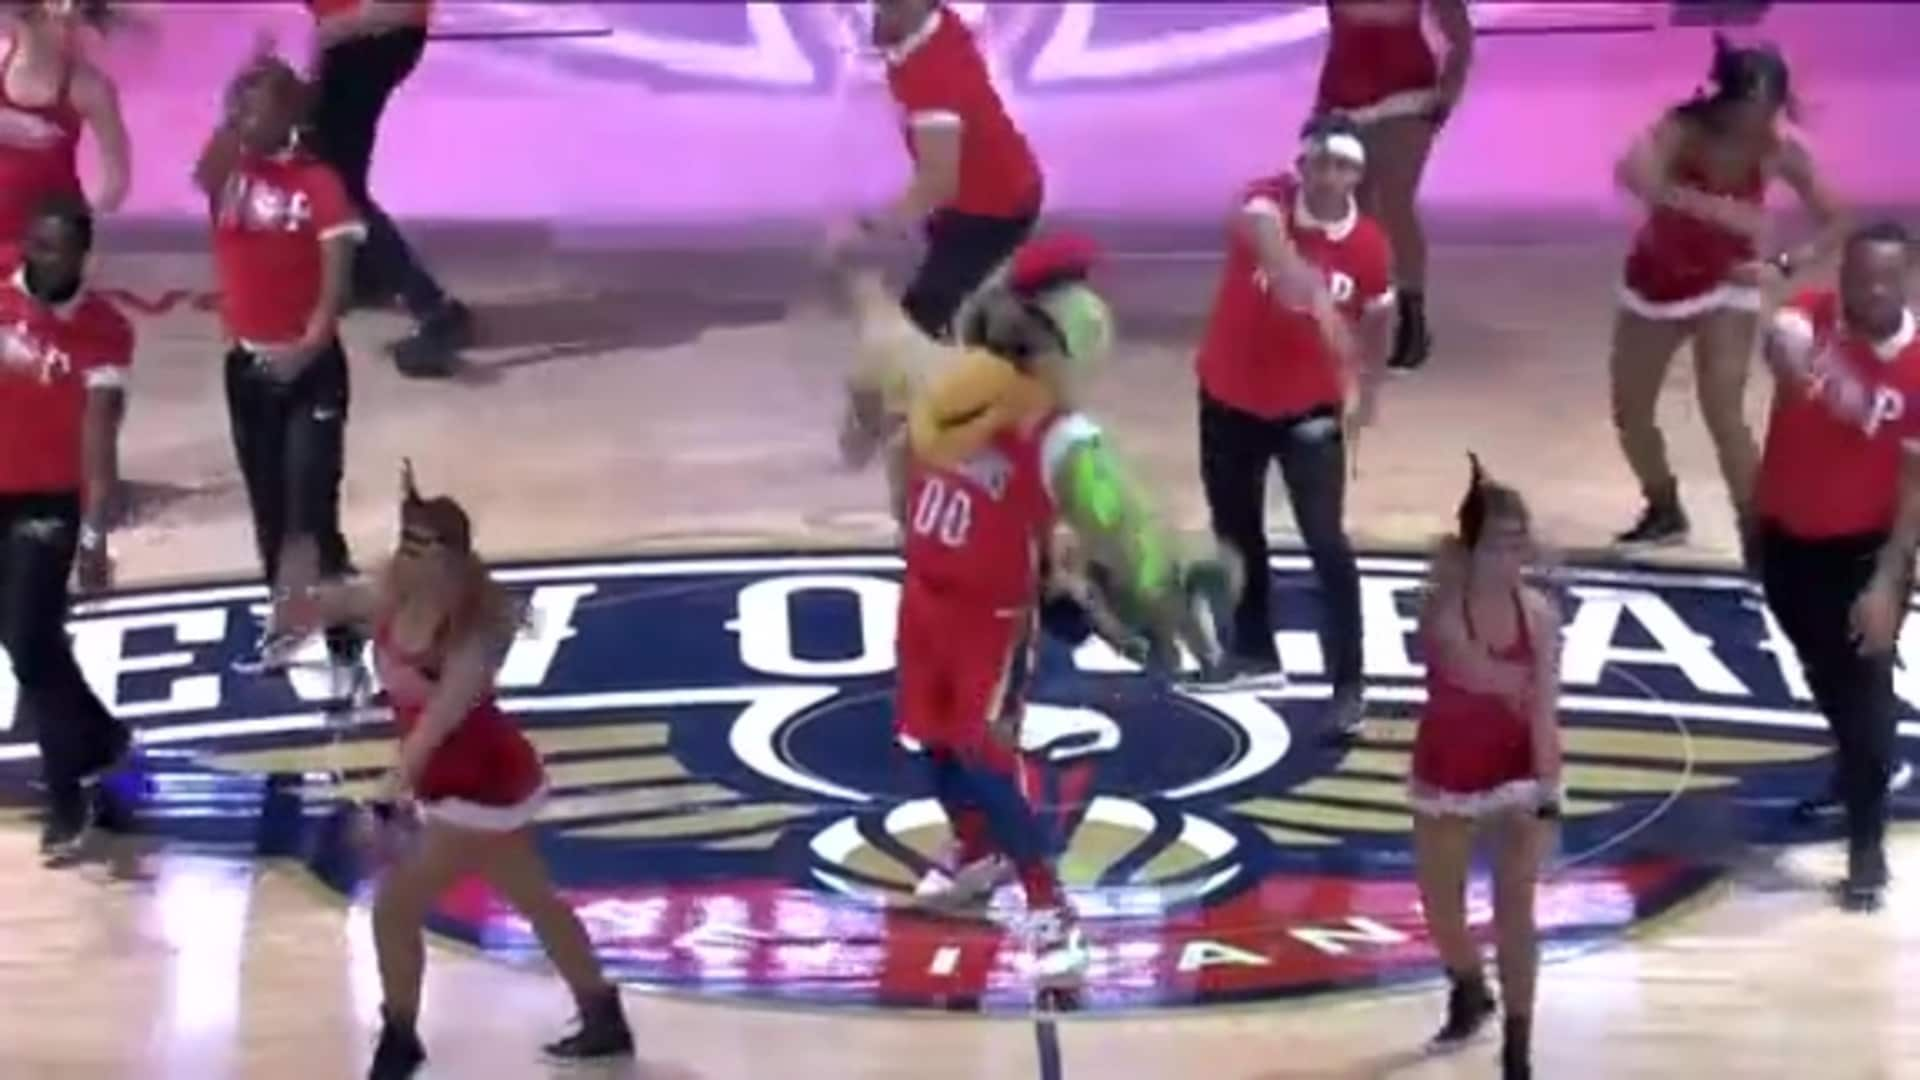 Entertainment: Pelicans Dance Team 3rd quarter performance - December 17 vs. Brooklyn Nets